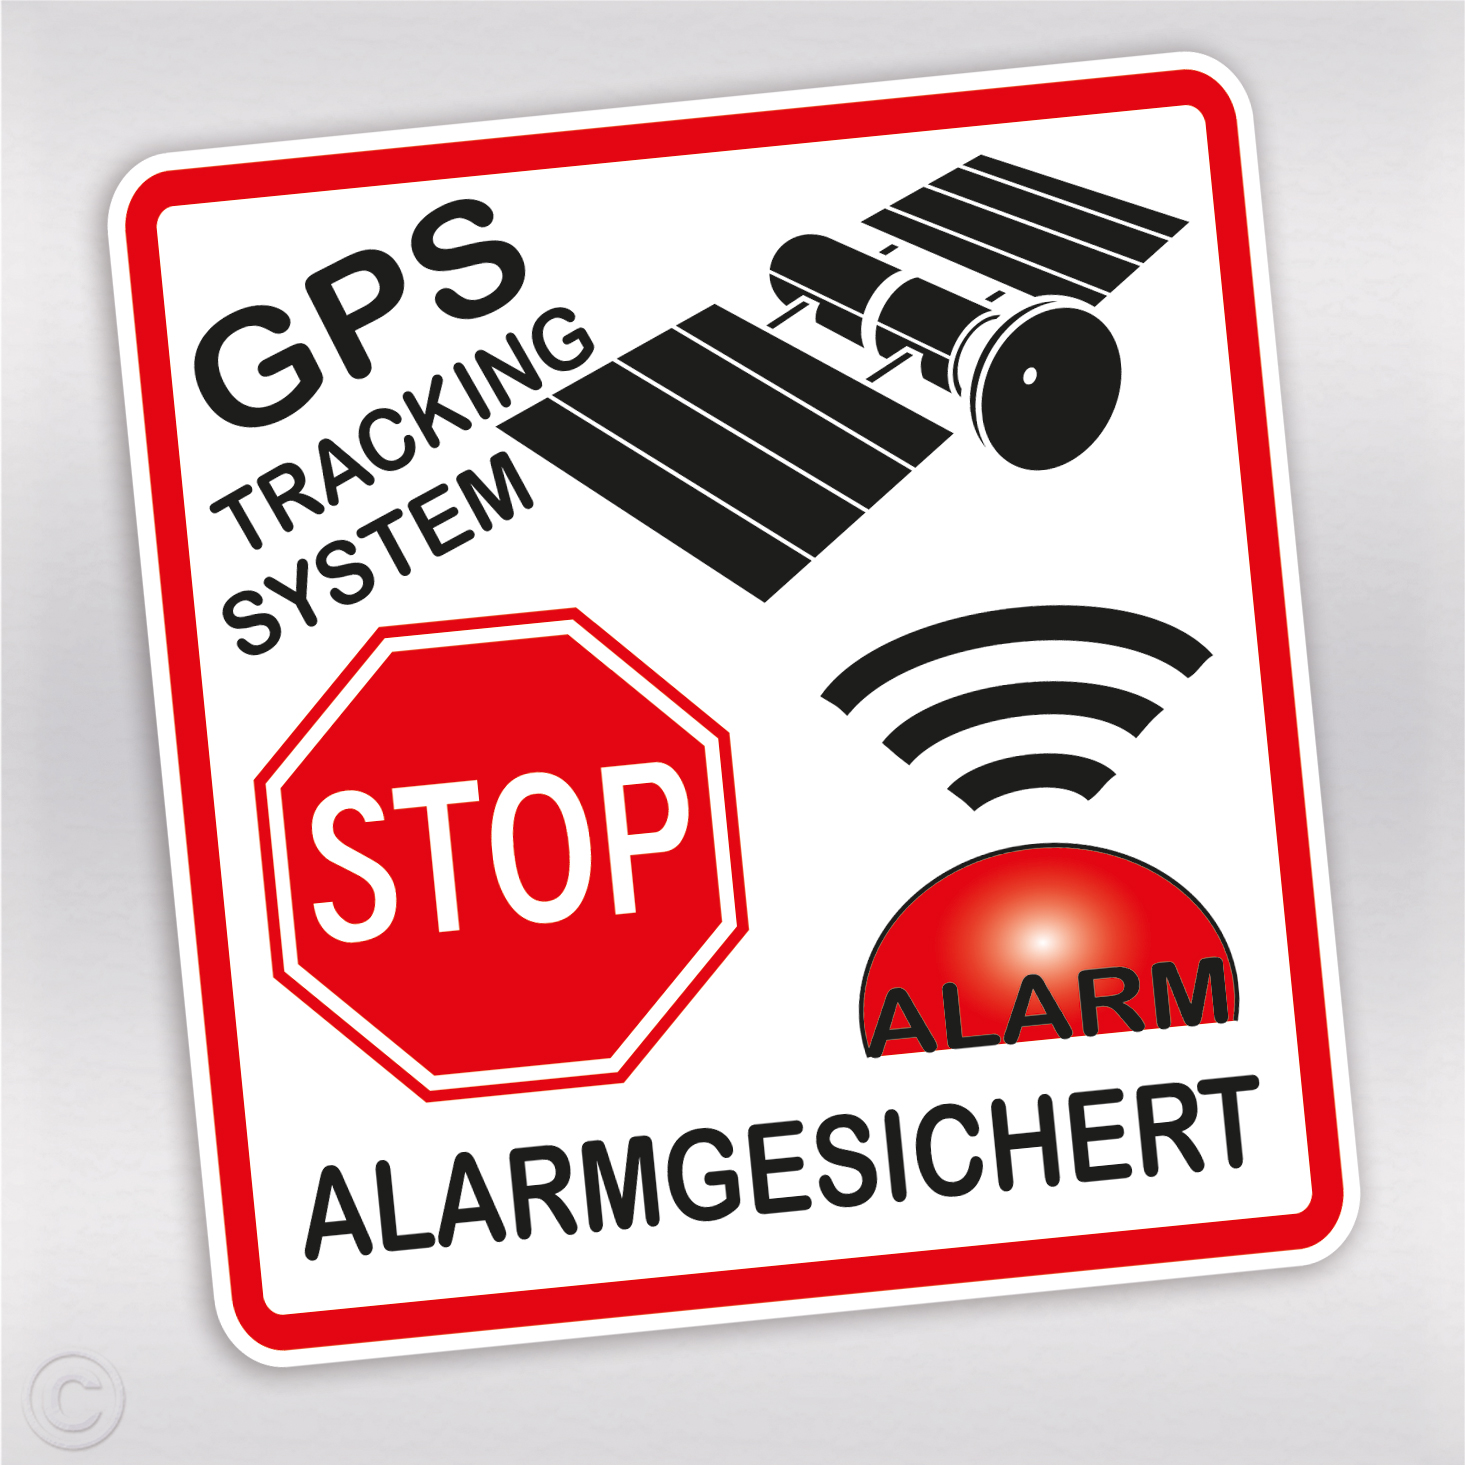 aufkleber alarmanlage mit gps tracking und stop schild f r auto. Black Bedroom Furniture Sets. Home Design Ideas